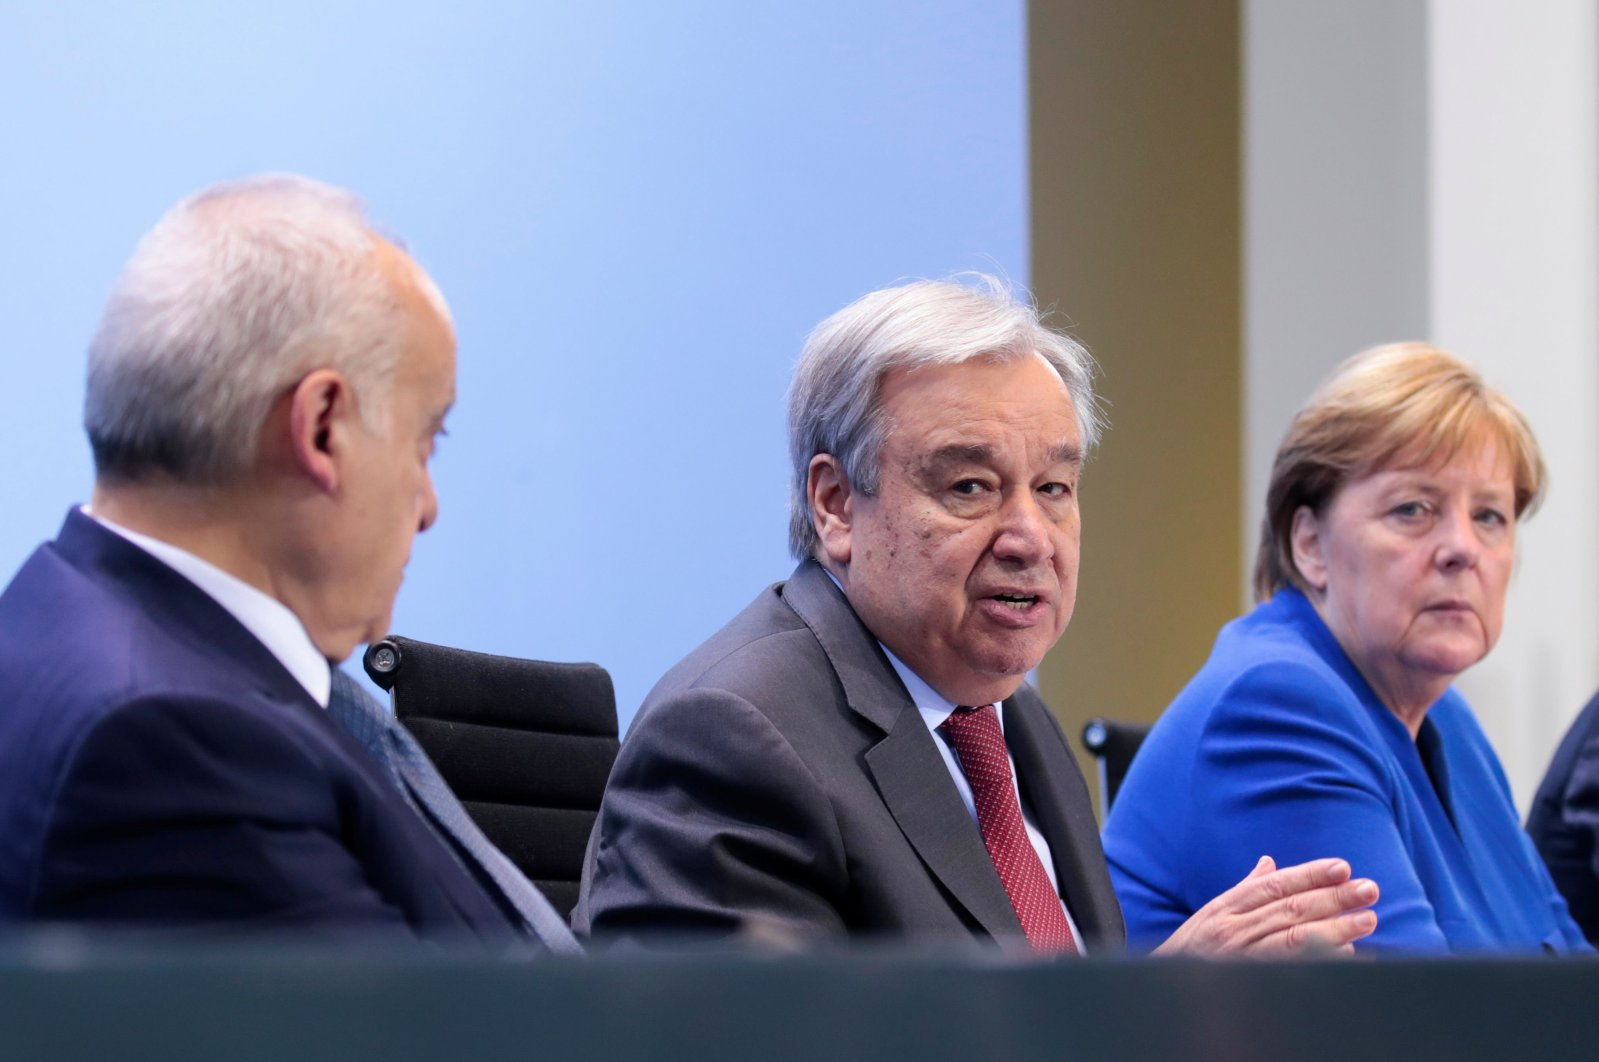 U.N. Secretary-General Antonio Guterres (C) speaks next to German Chancellor Angela Merkel (R) during a news conference at the end of a Peace summit on Libya at the Chancellery in Berlin on Jan. 19, 2020. (AFP File Photo)